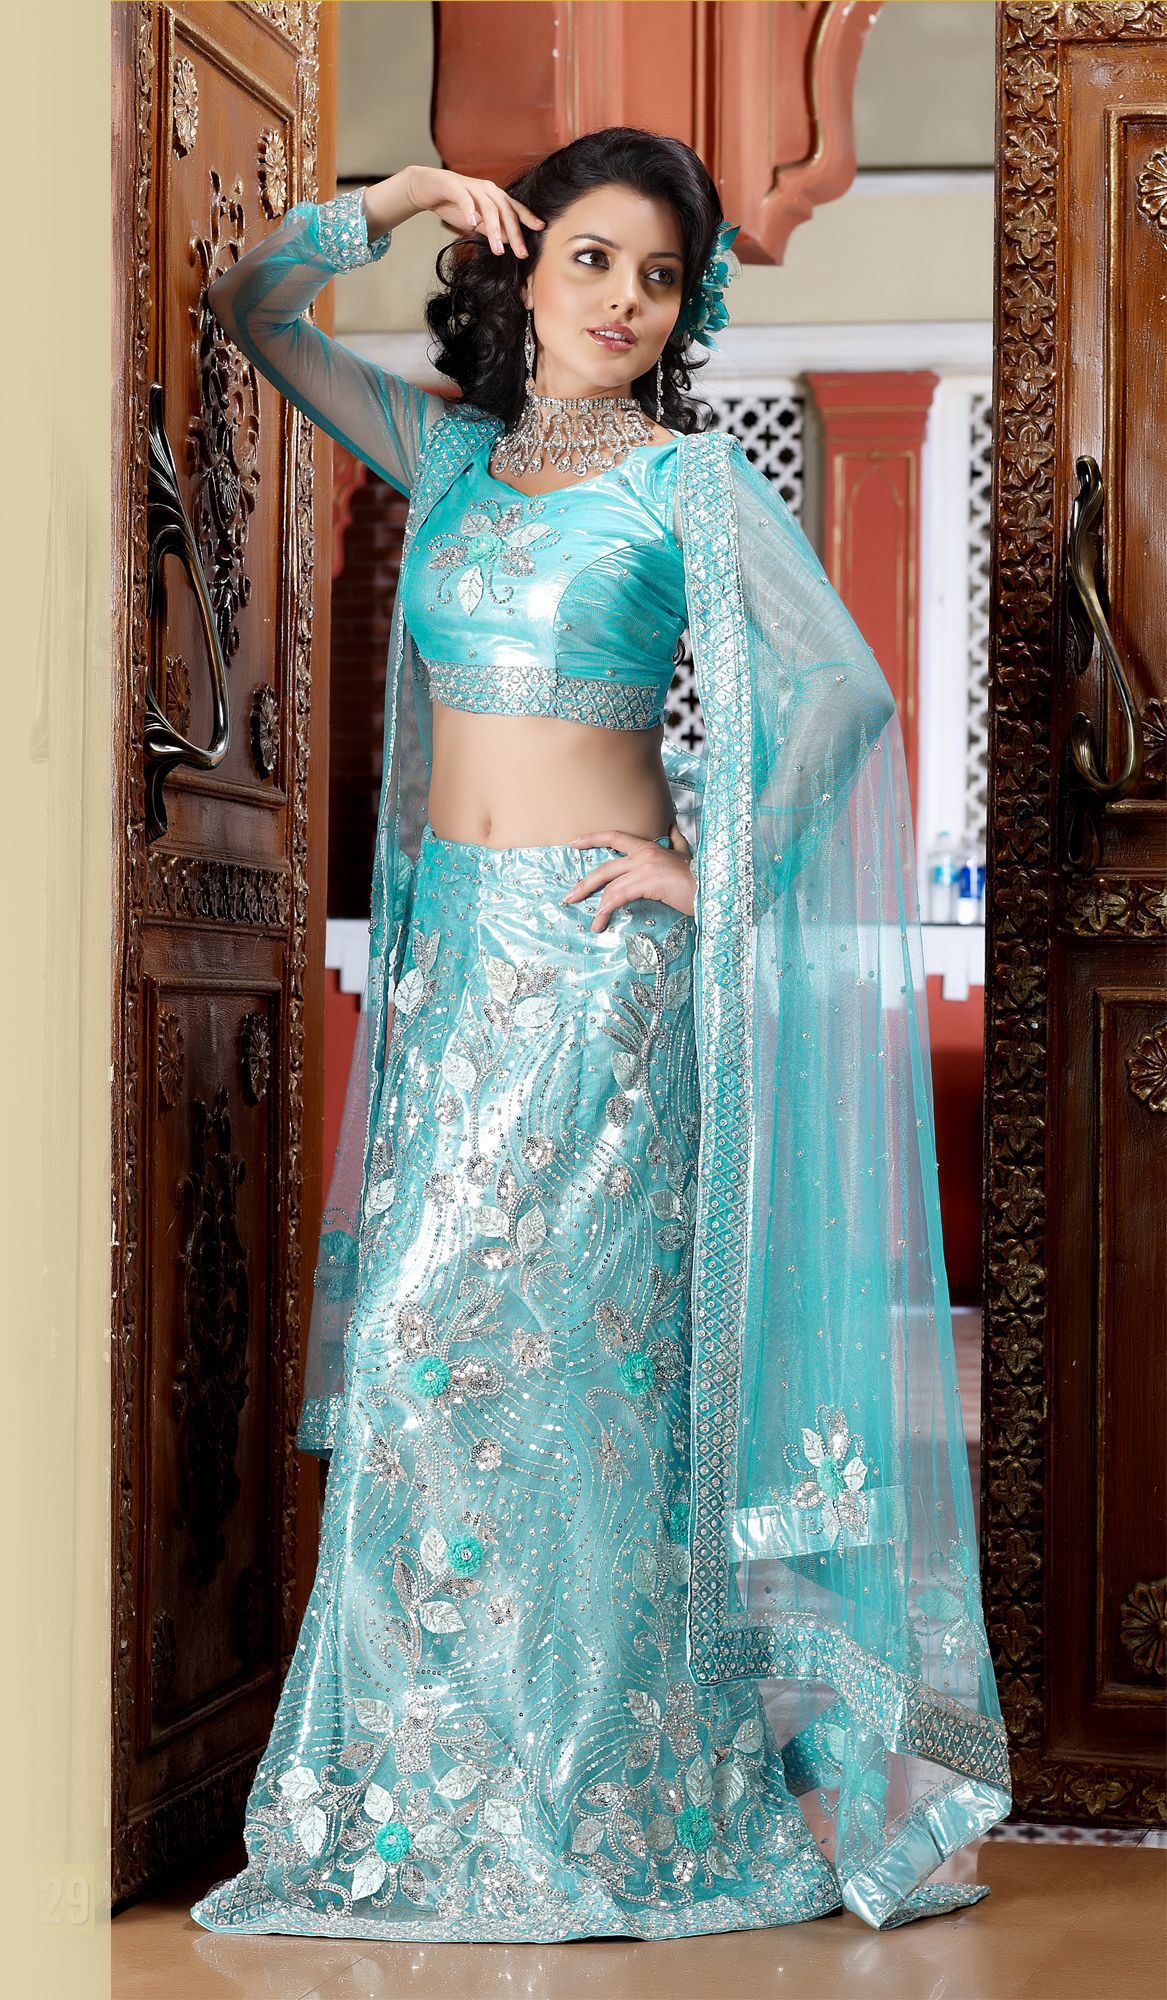 Sky Blue Wedding #Designer #Saree | South Asian Fashion | Pinterest ...